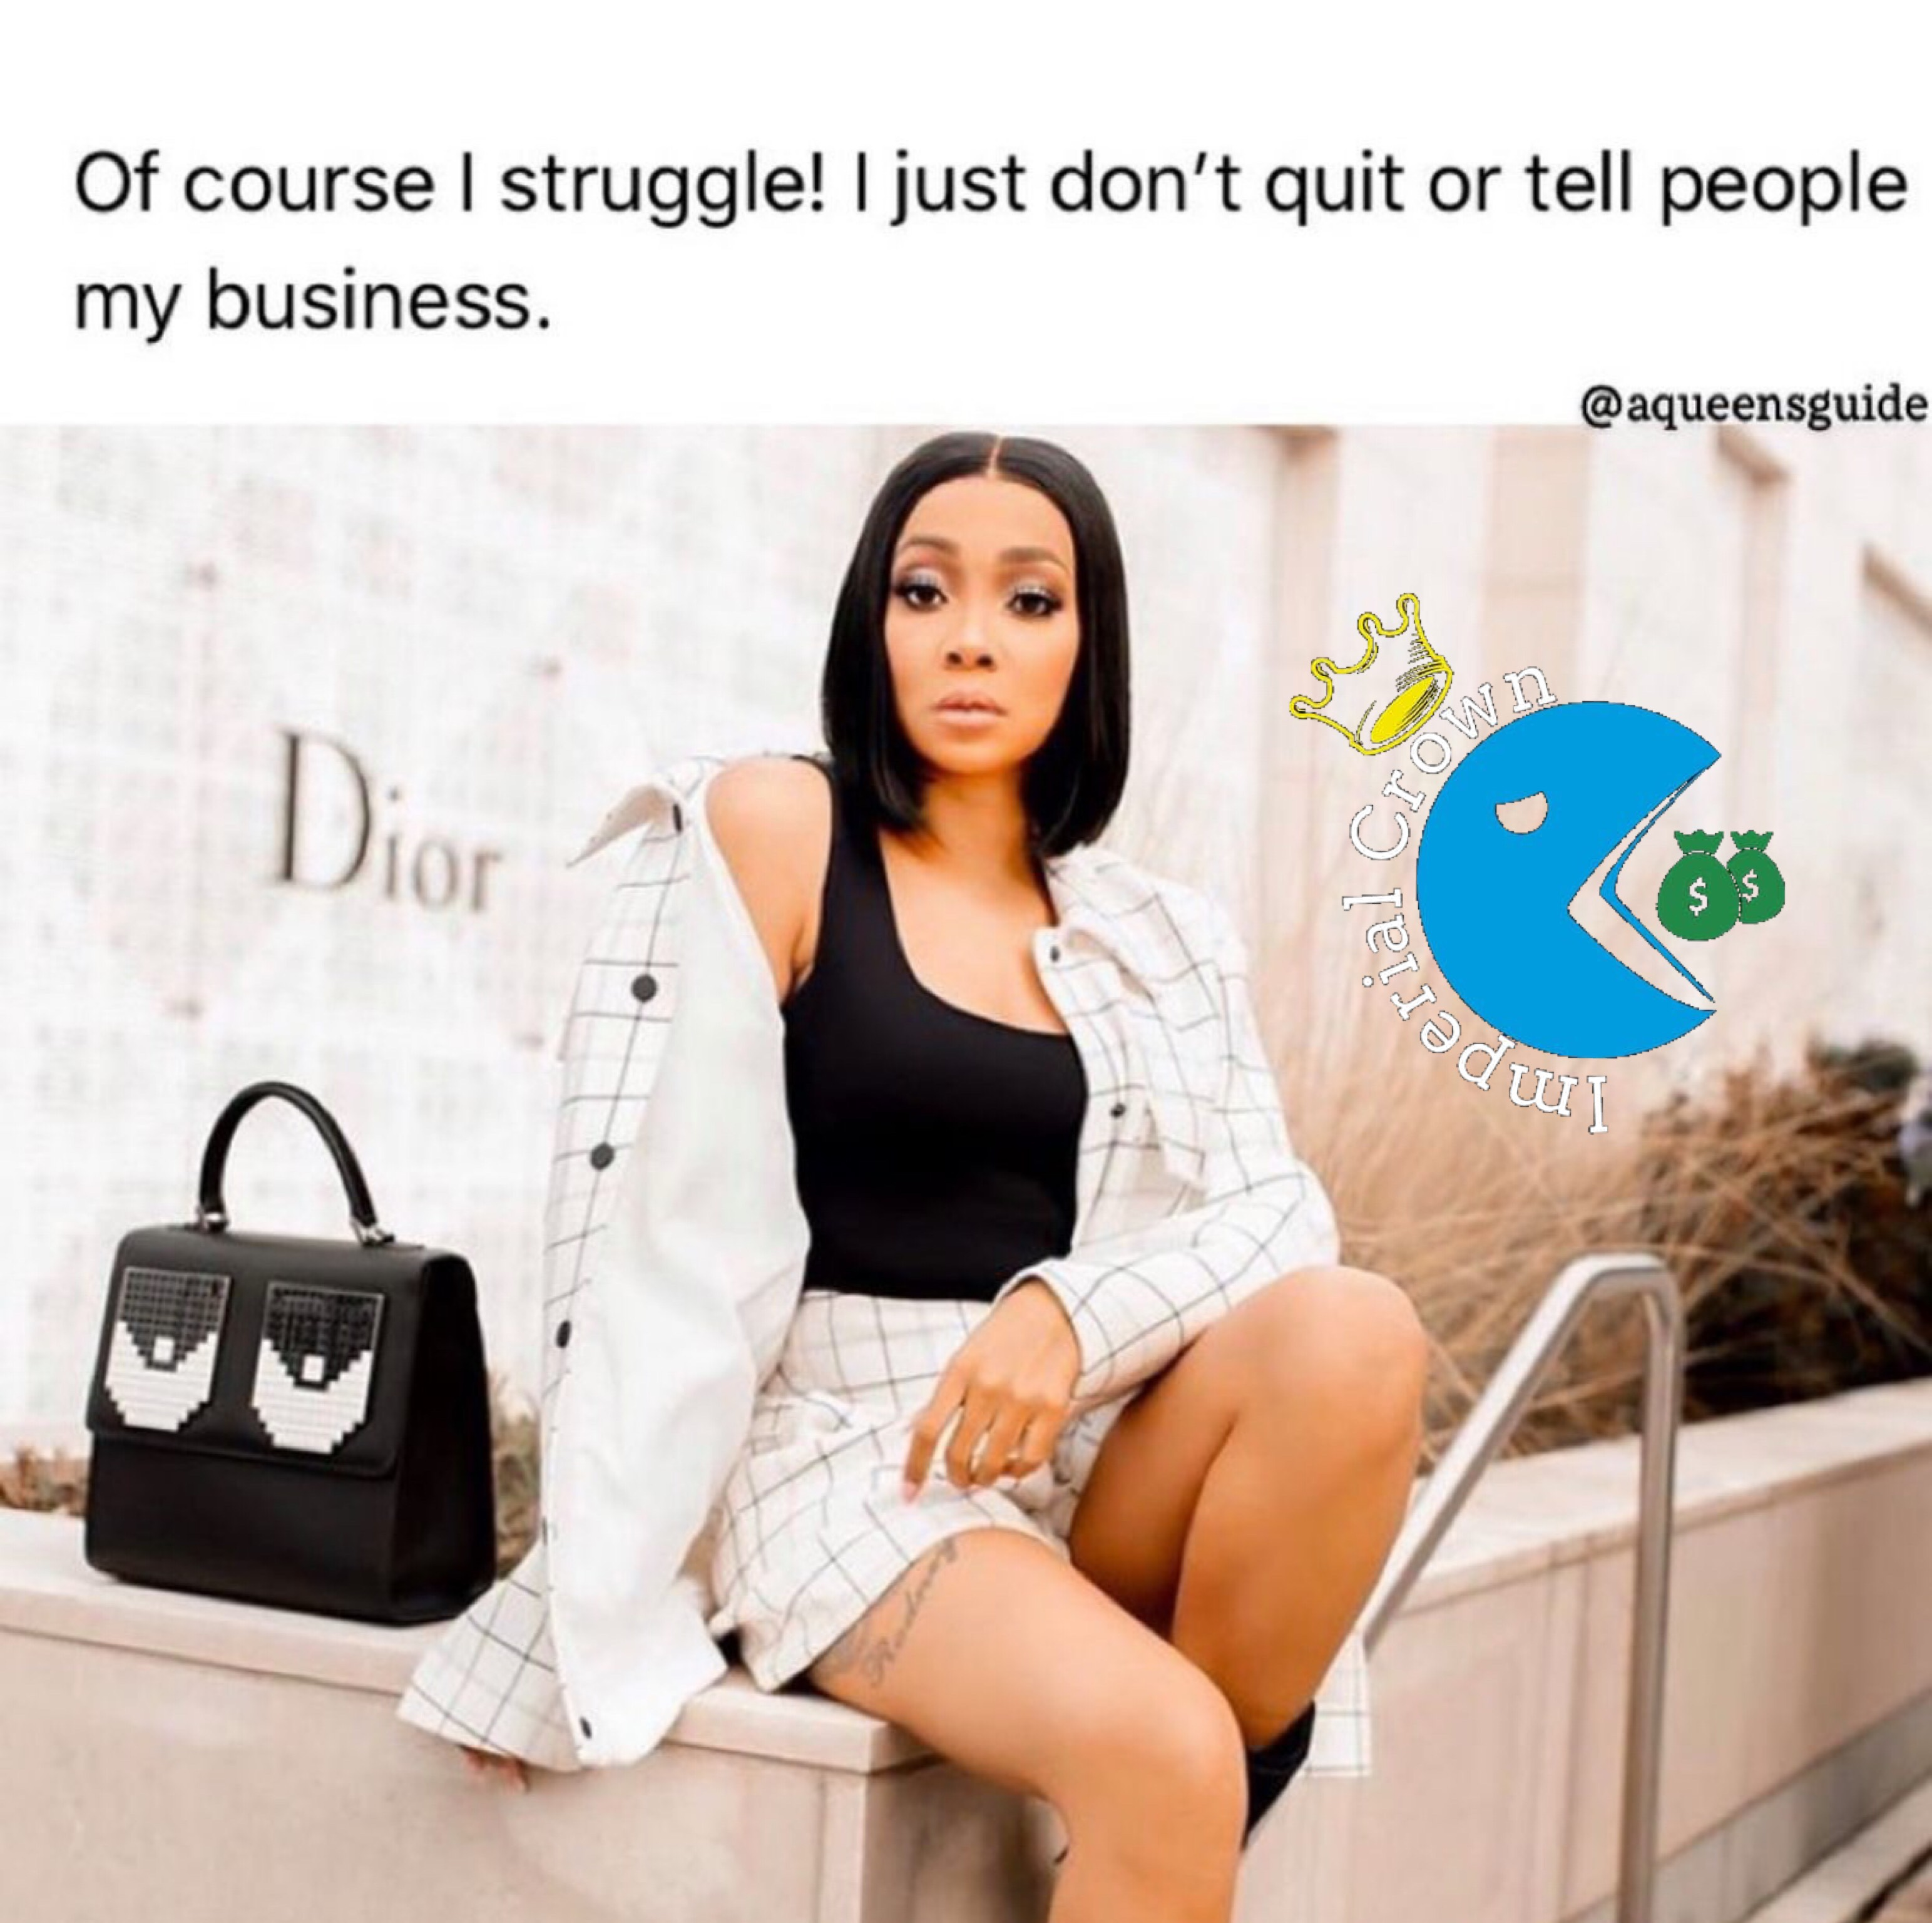 Of course I struggle I just don't quit or tell people my business